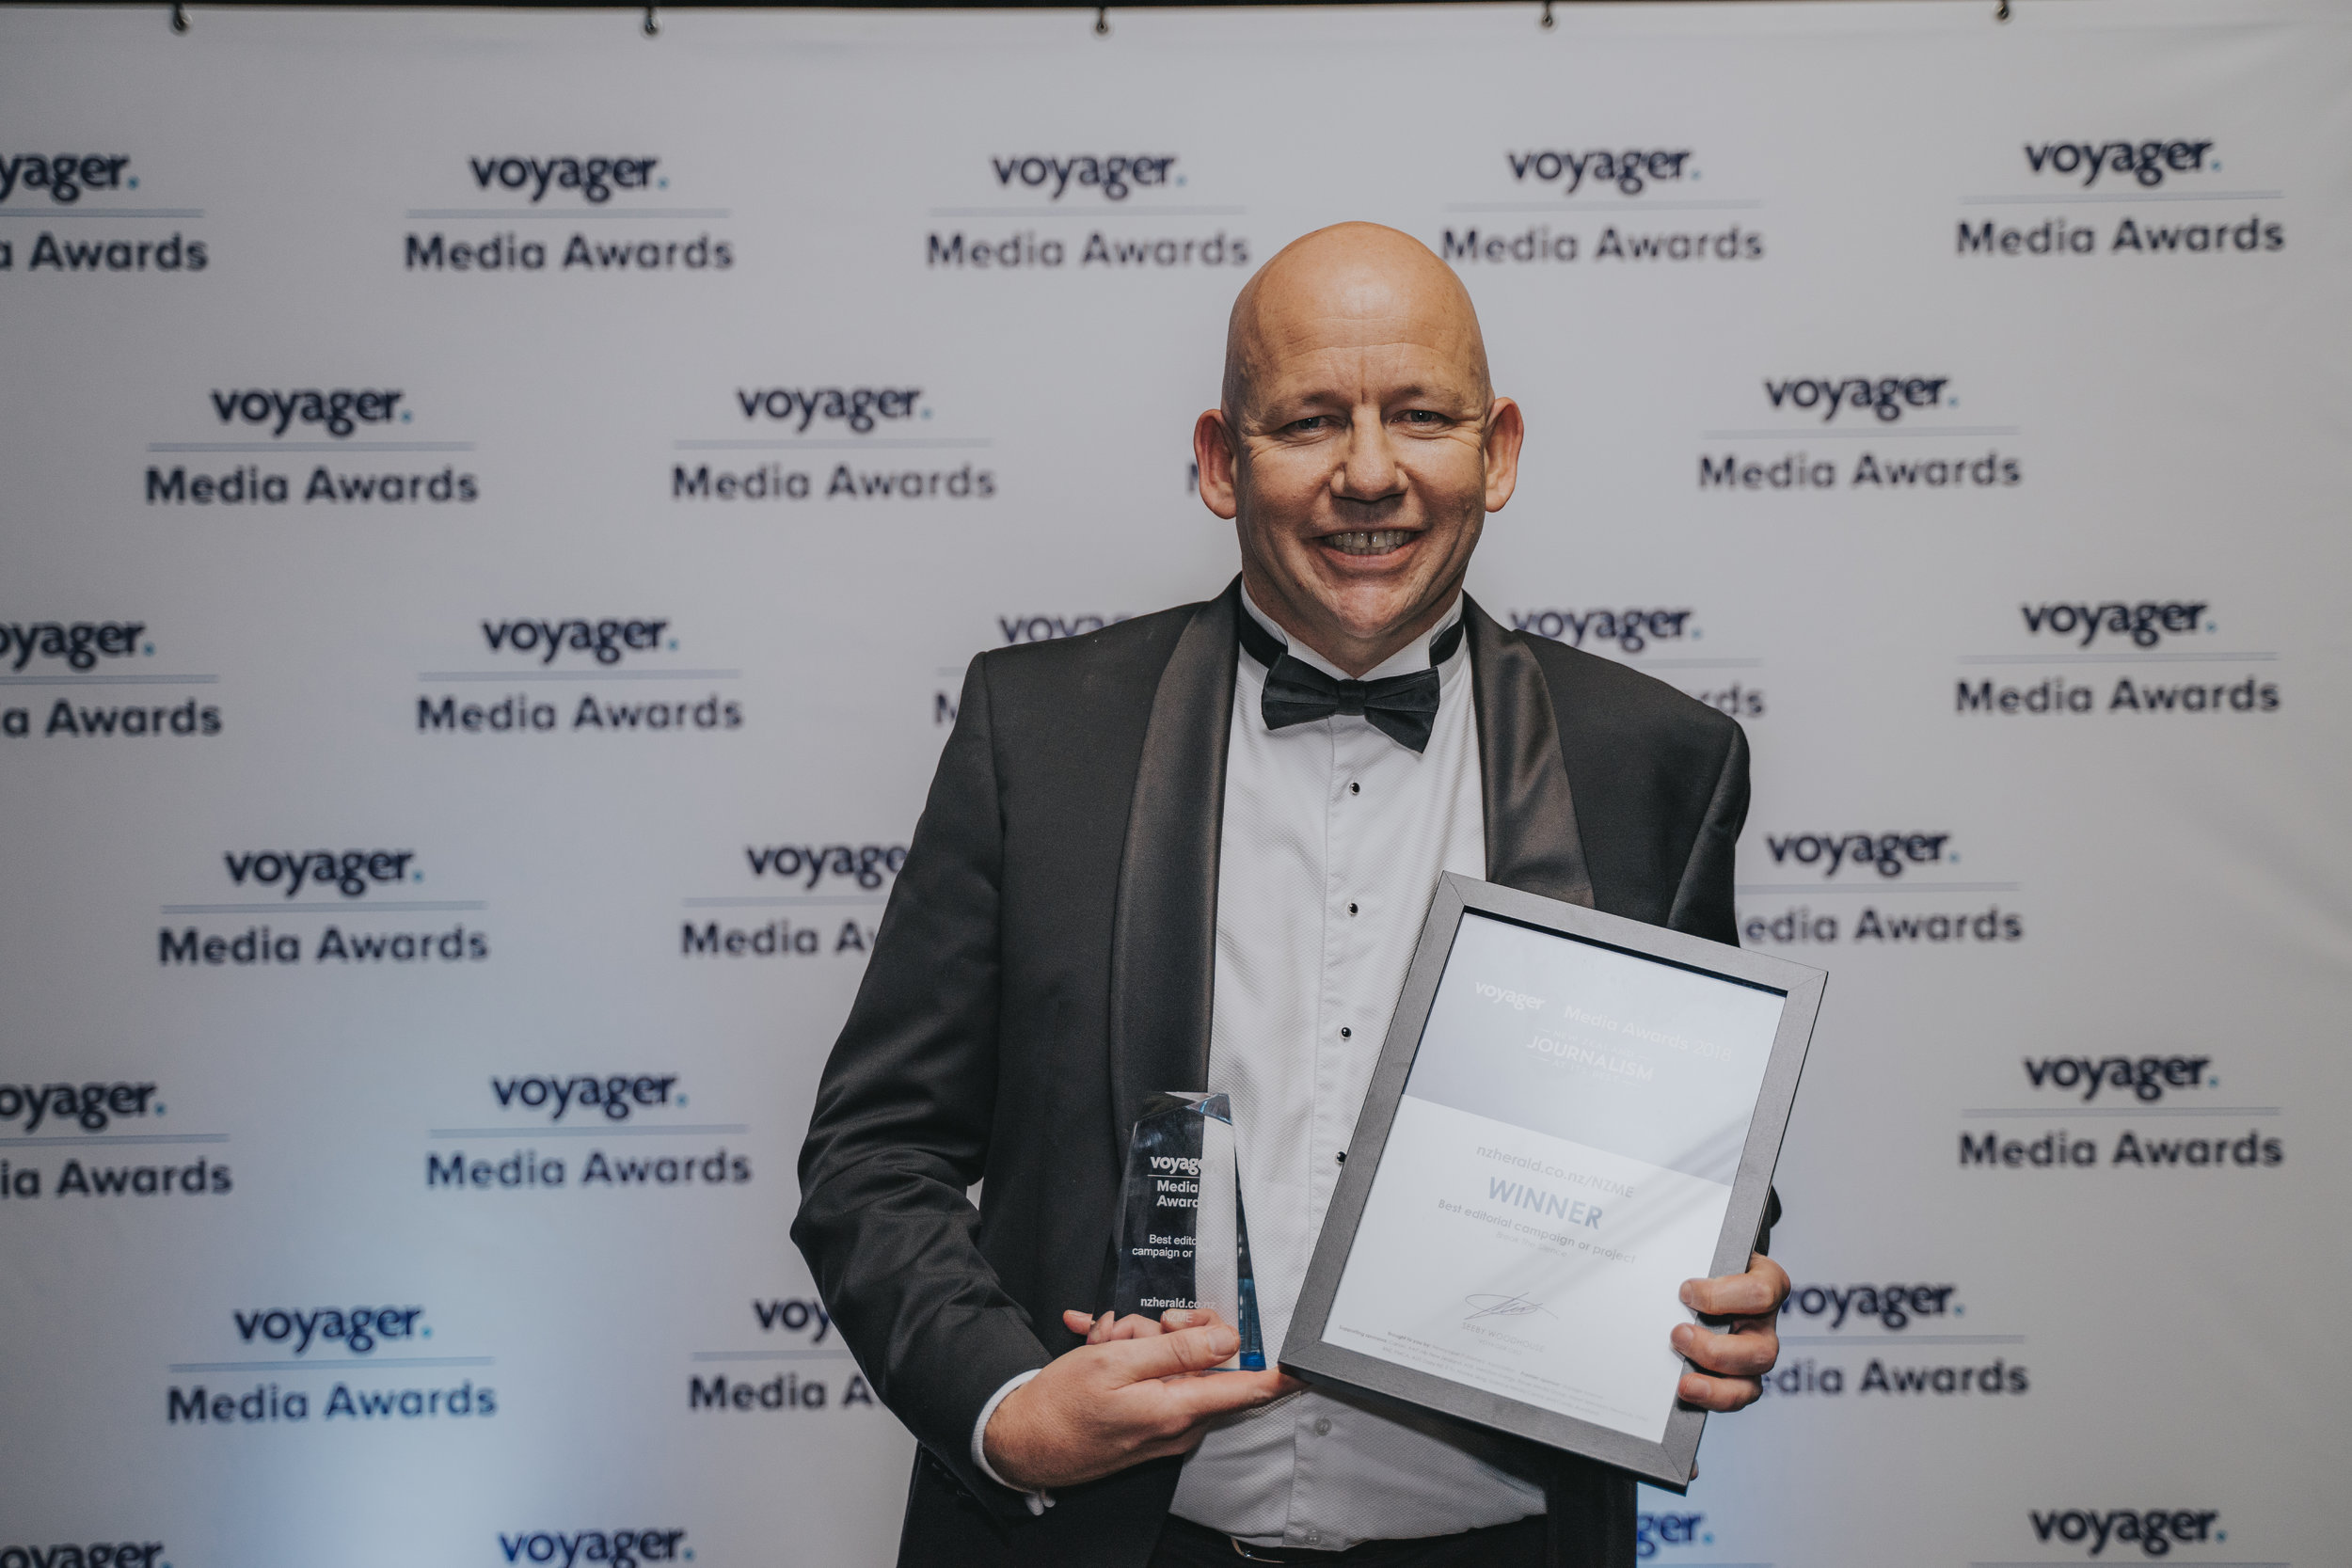 Voyager Media Awards 2018-301.JPG